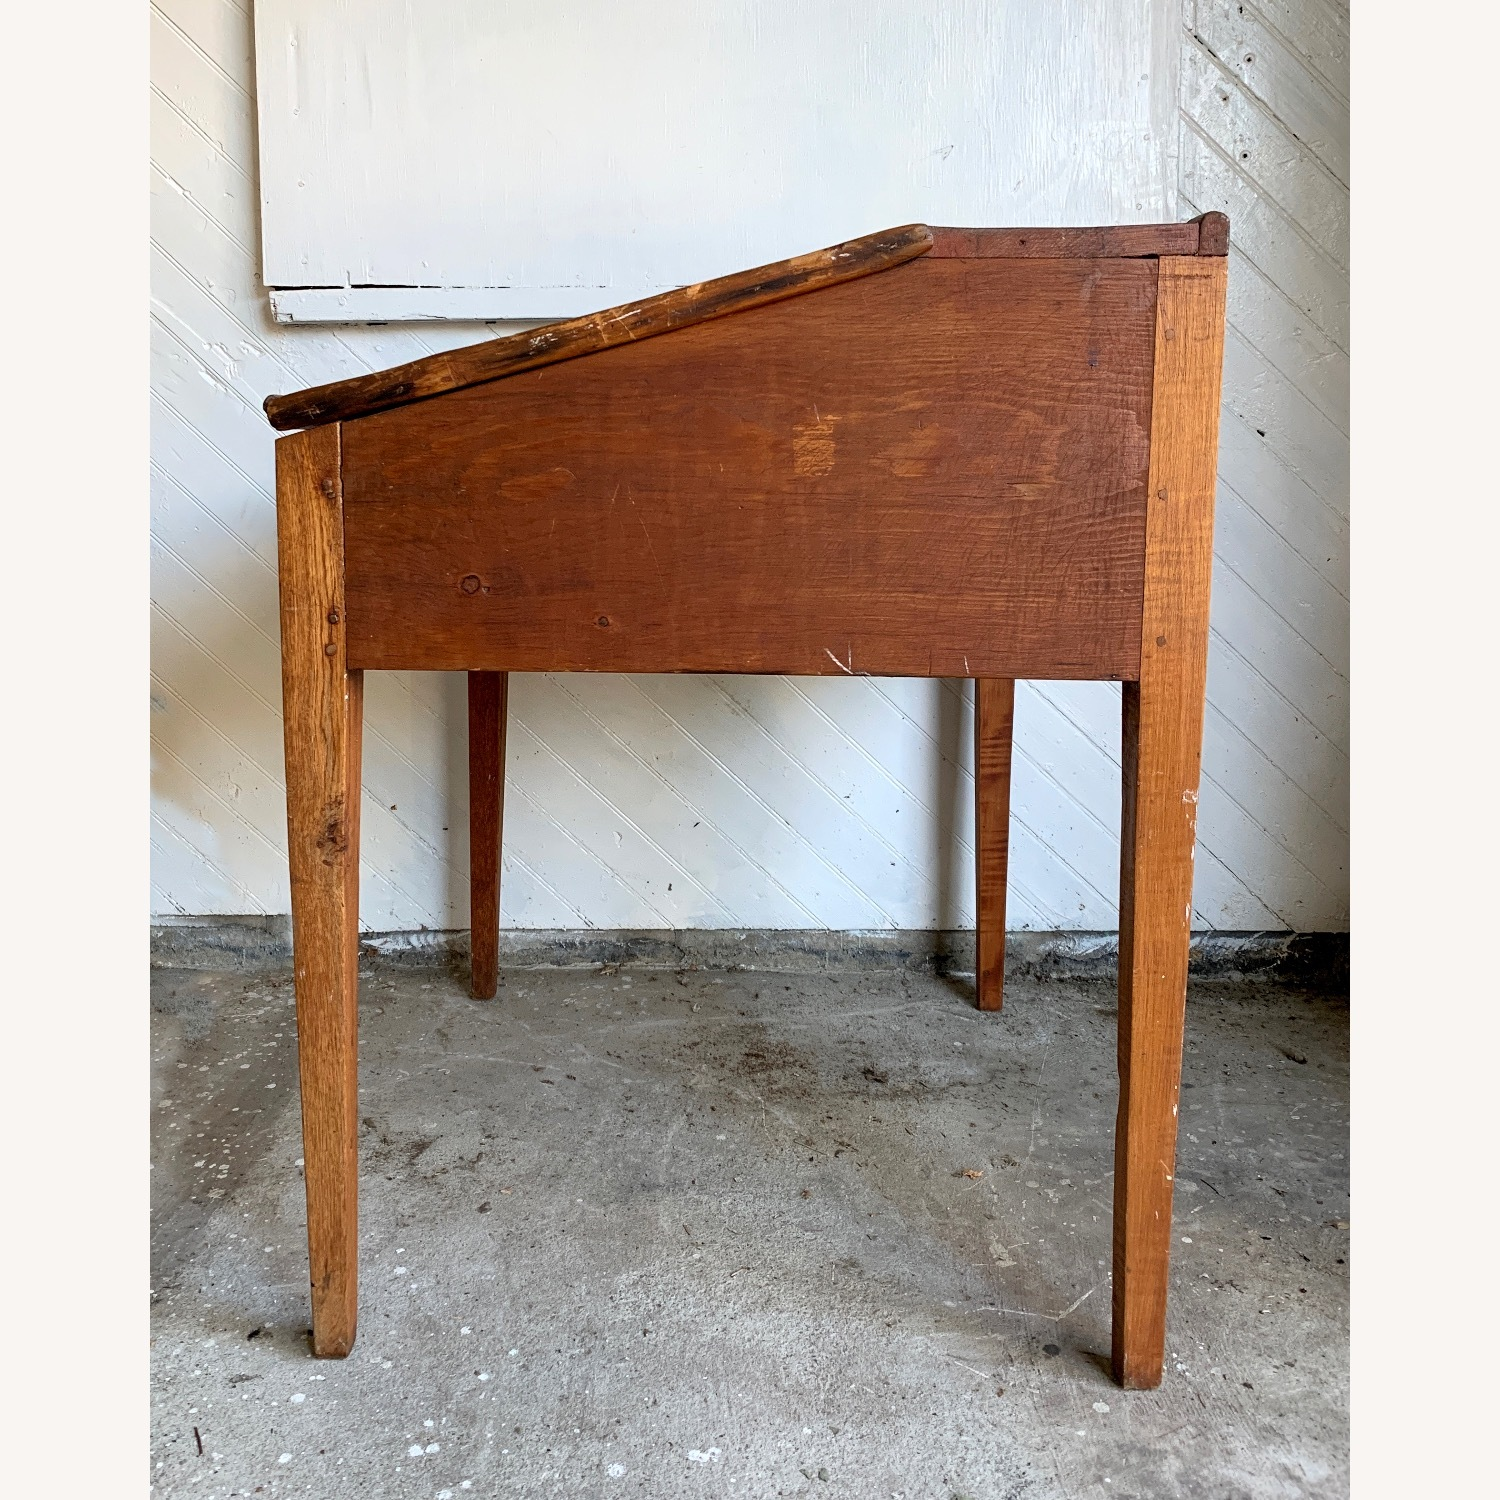 Antique Wooden Slant-top Desk with Storage - image-3